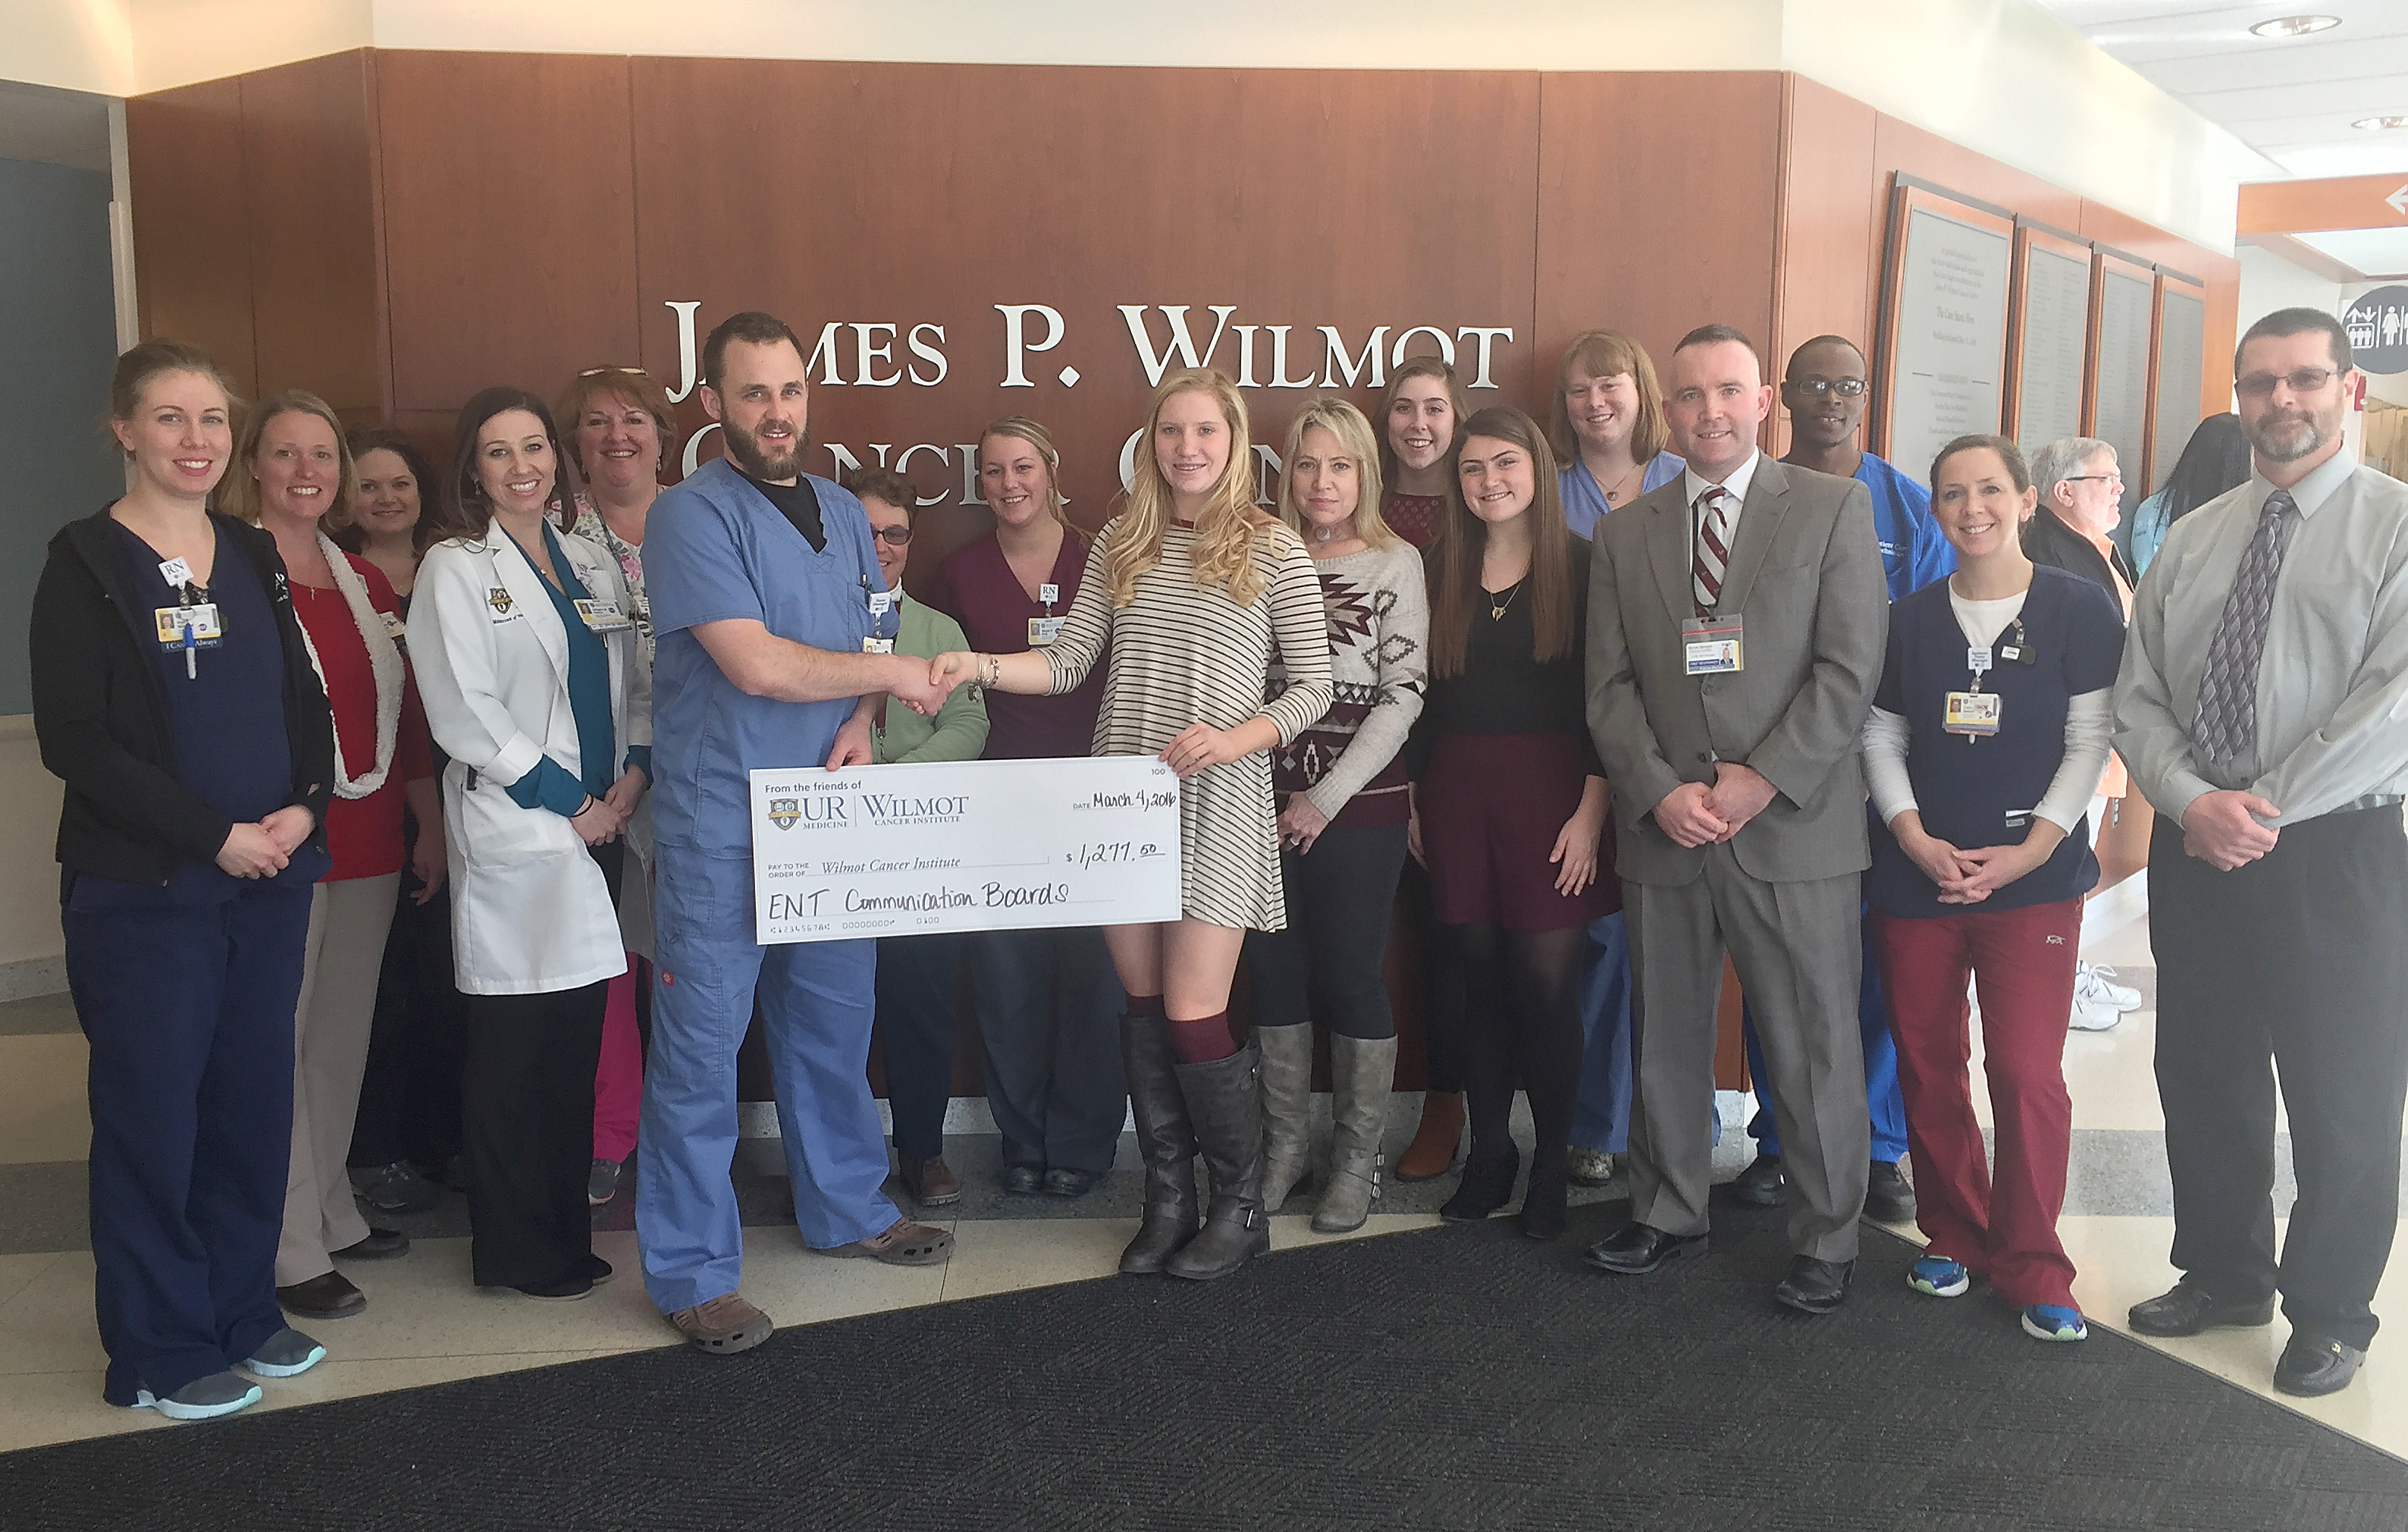 Representatives from the Byron-Bergen girls soccer team presented a check for $1,277 to the doctors and medical team at Strong Hospital's Wilmot Cancer Center. Holding check - High school junior Karson Richenberg. (L-r) Toni Richenberg, junior Olivia Audsley, senior Alex Rosse, Principal Patrick McGee and Coach Wayne Hill. Provided photo